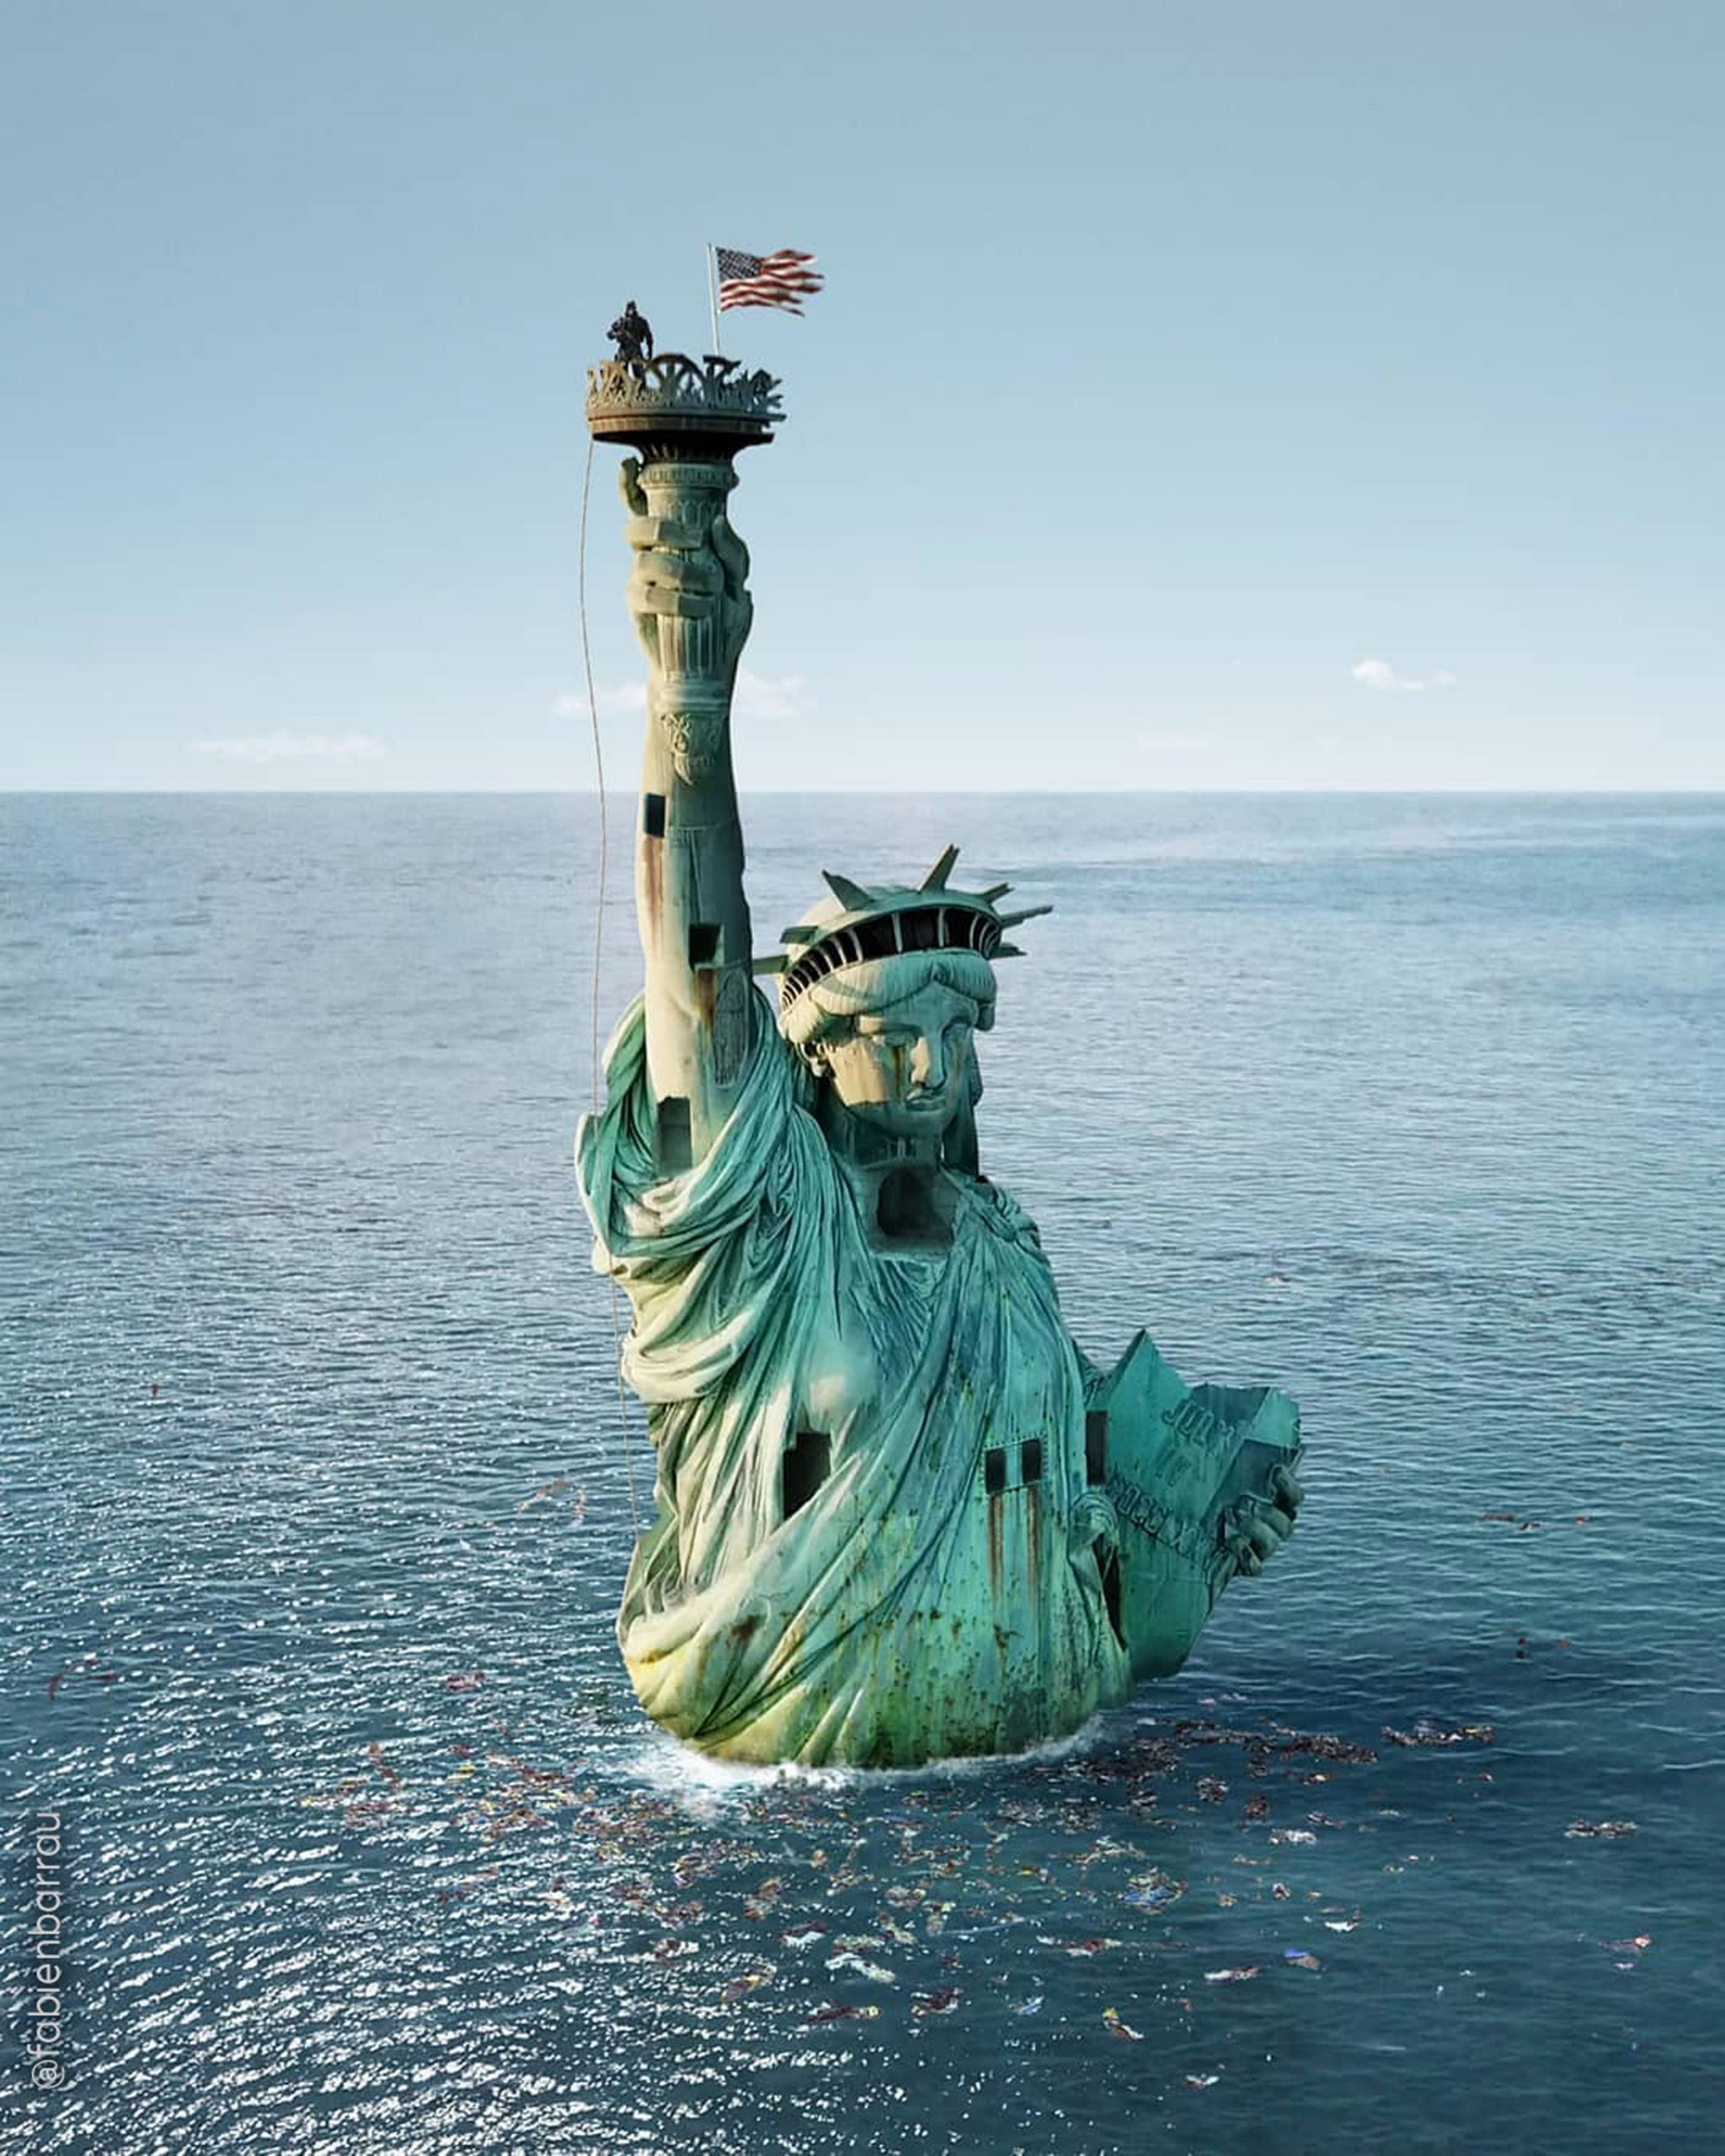 Lady Liberty from News from the Future by Fabien Barrau